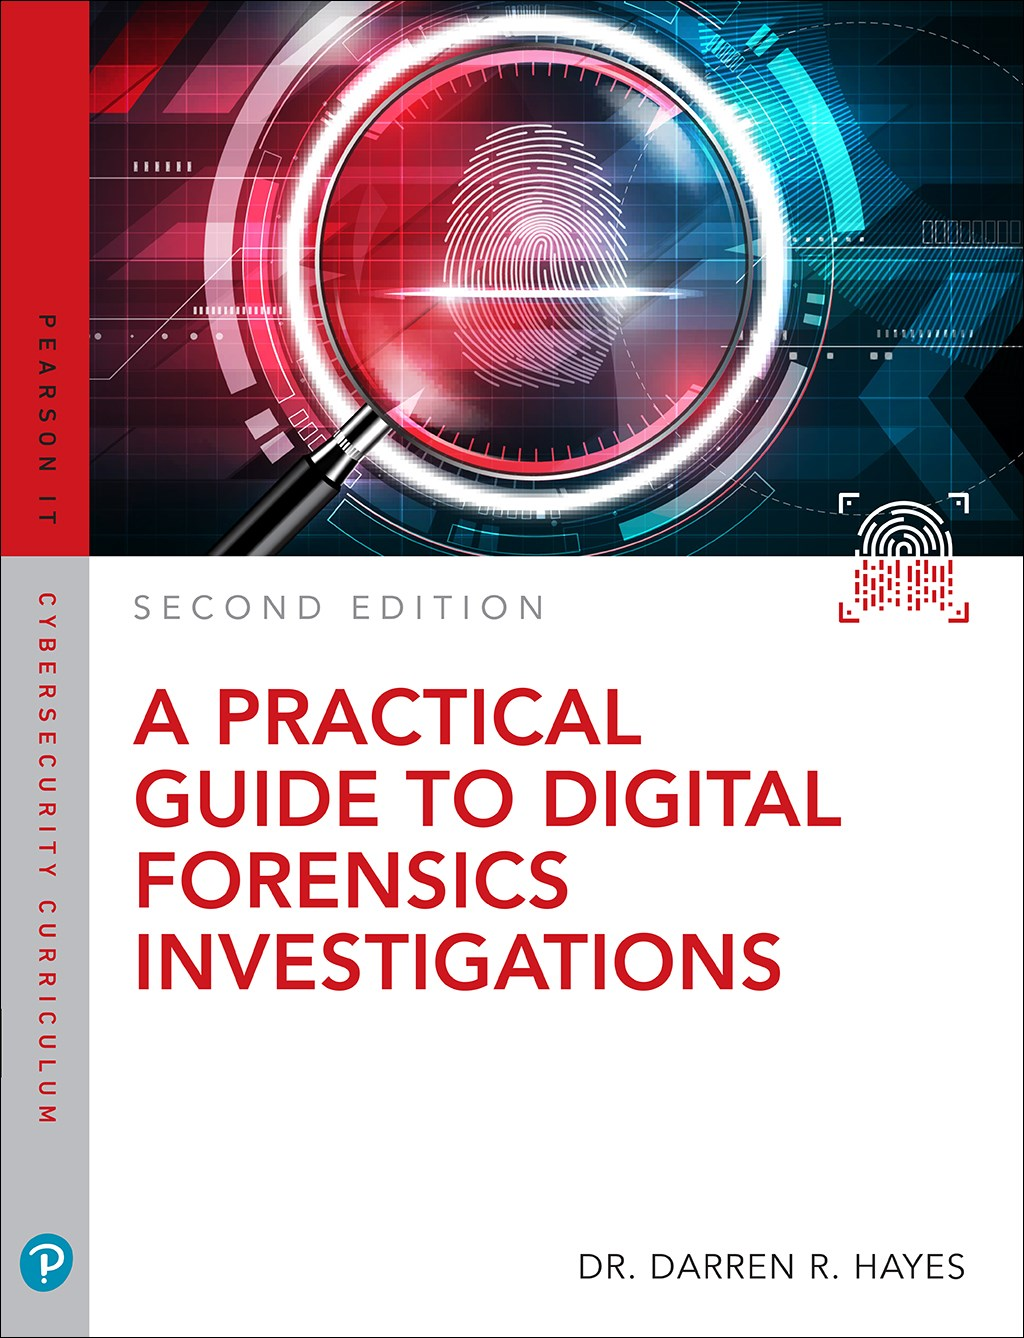 Practical Guide to Digital Forensics Investigations, 2nd Edition